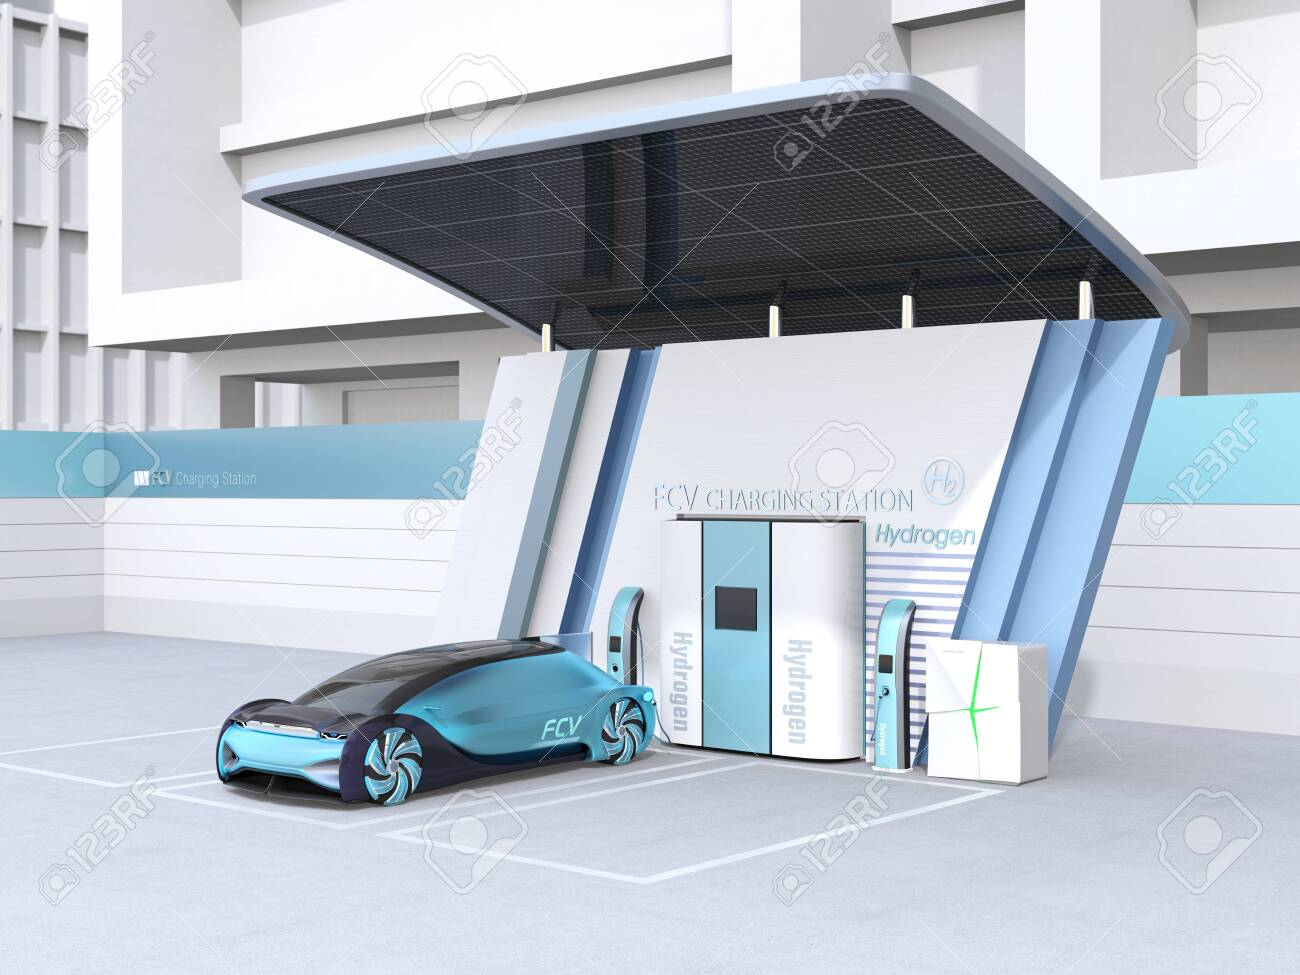 Fuel Cell powered autonomous car filling gas in Fuel Cell Hydrogen Station equipped with solar panels. 3D rendering image. - 123796437